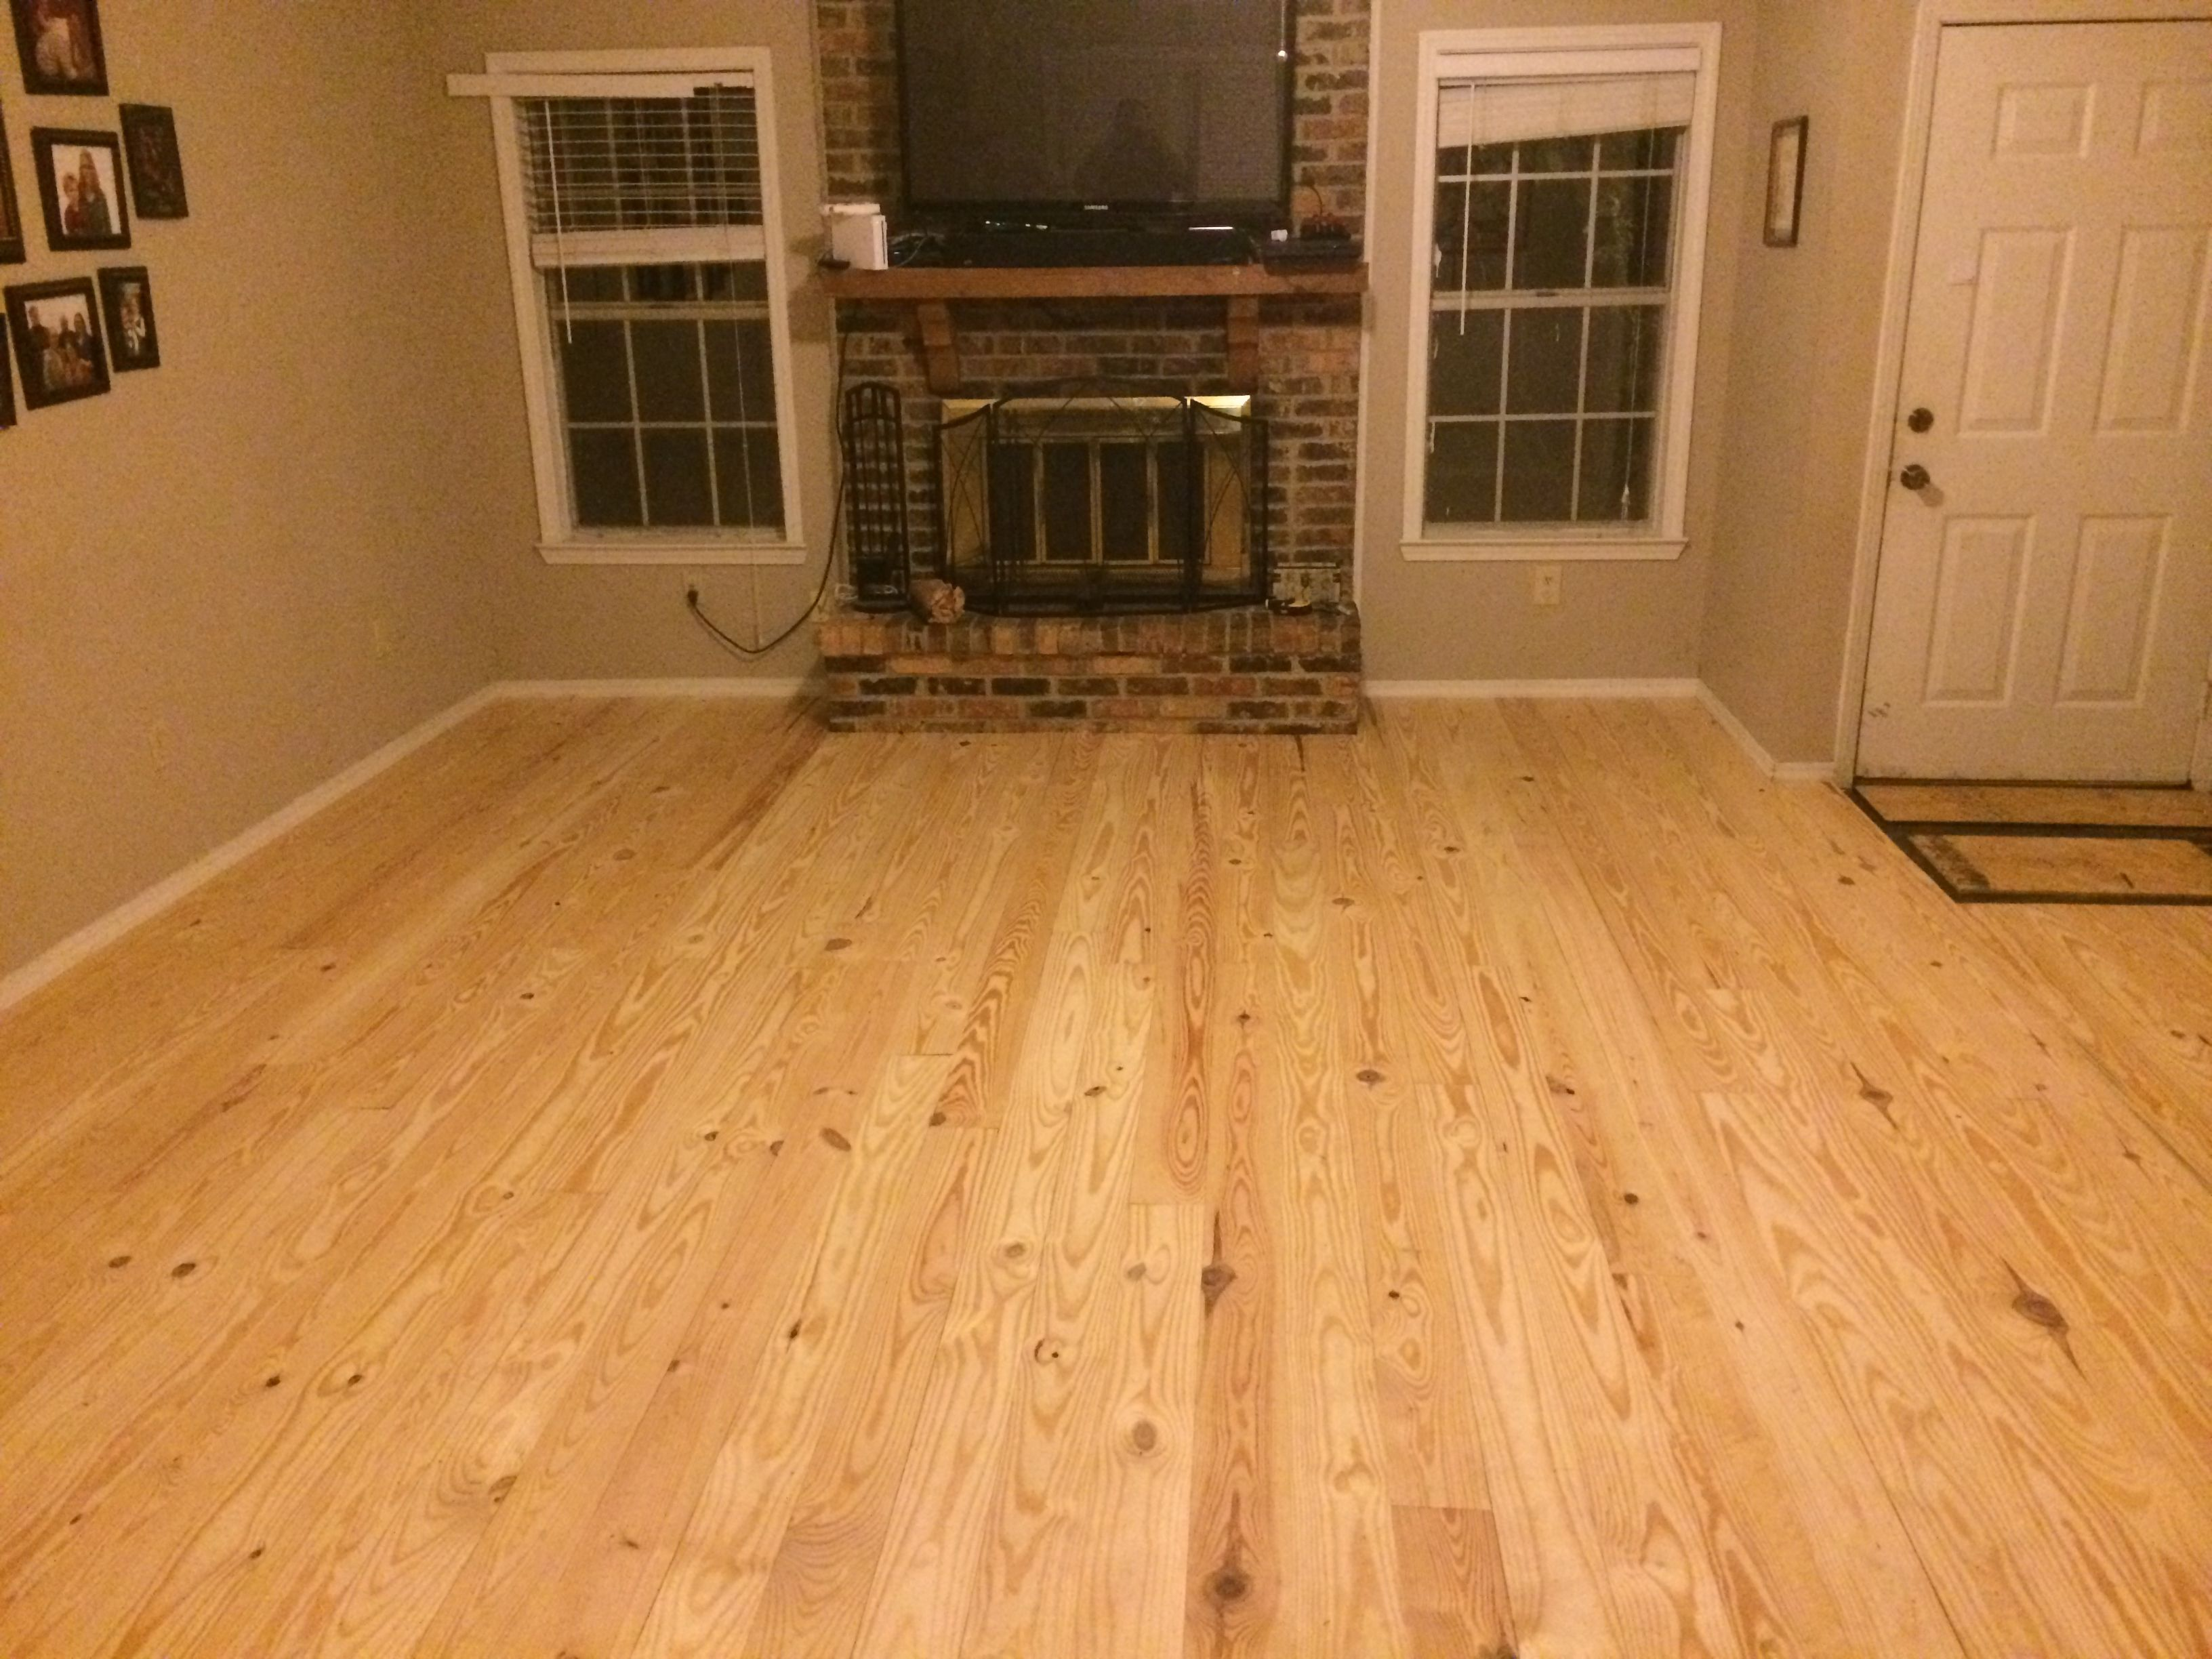 Knotty Pine Flooring : Rustic knotty pine flooring from southern wood specialties